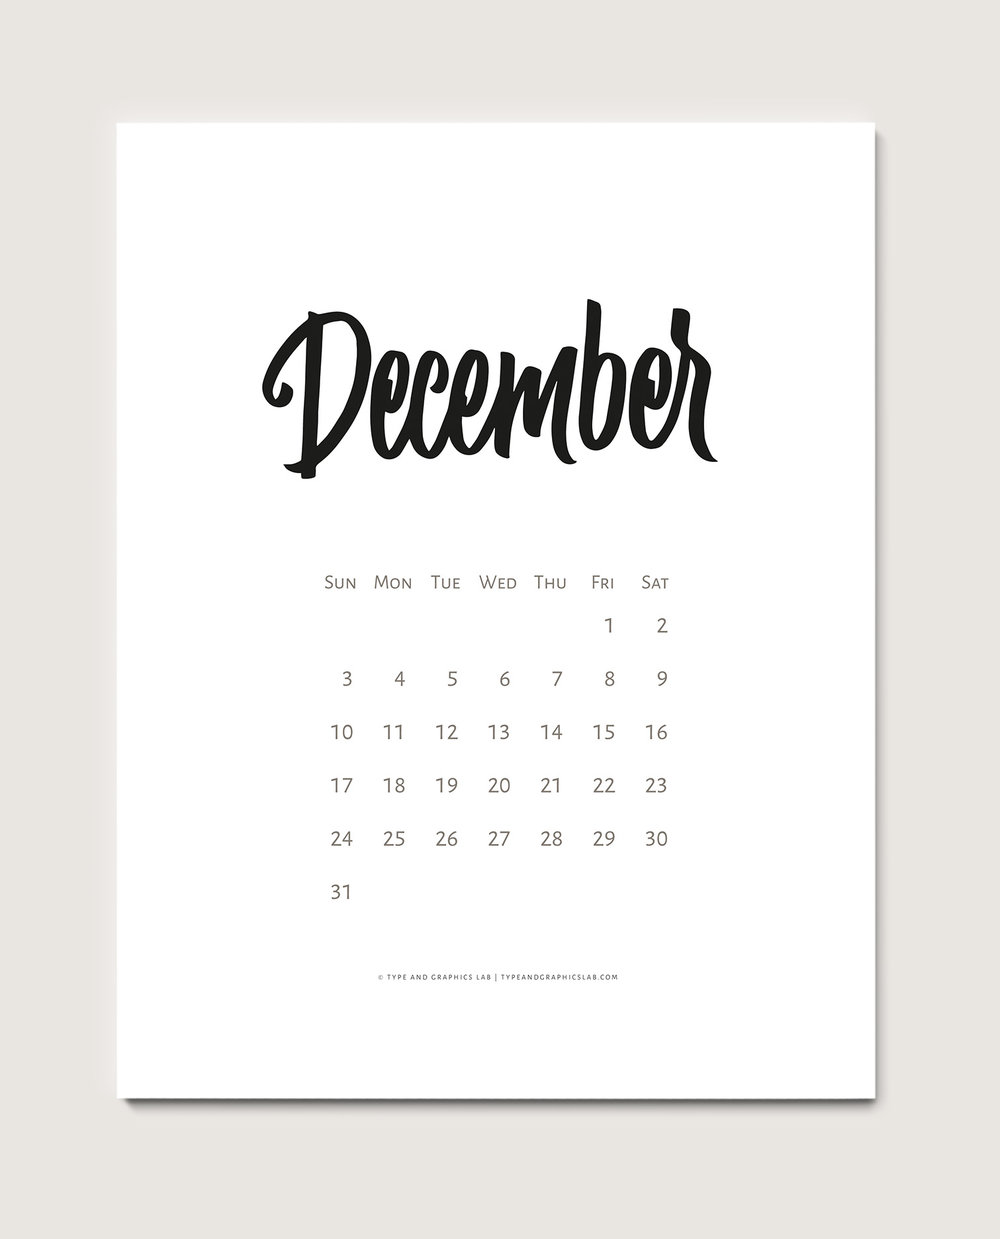 Download a free printable calendar for December 2017 | © typeandgraphicslab.com | For personal use only